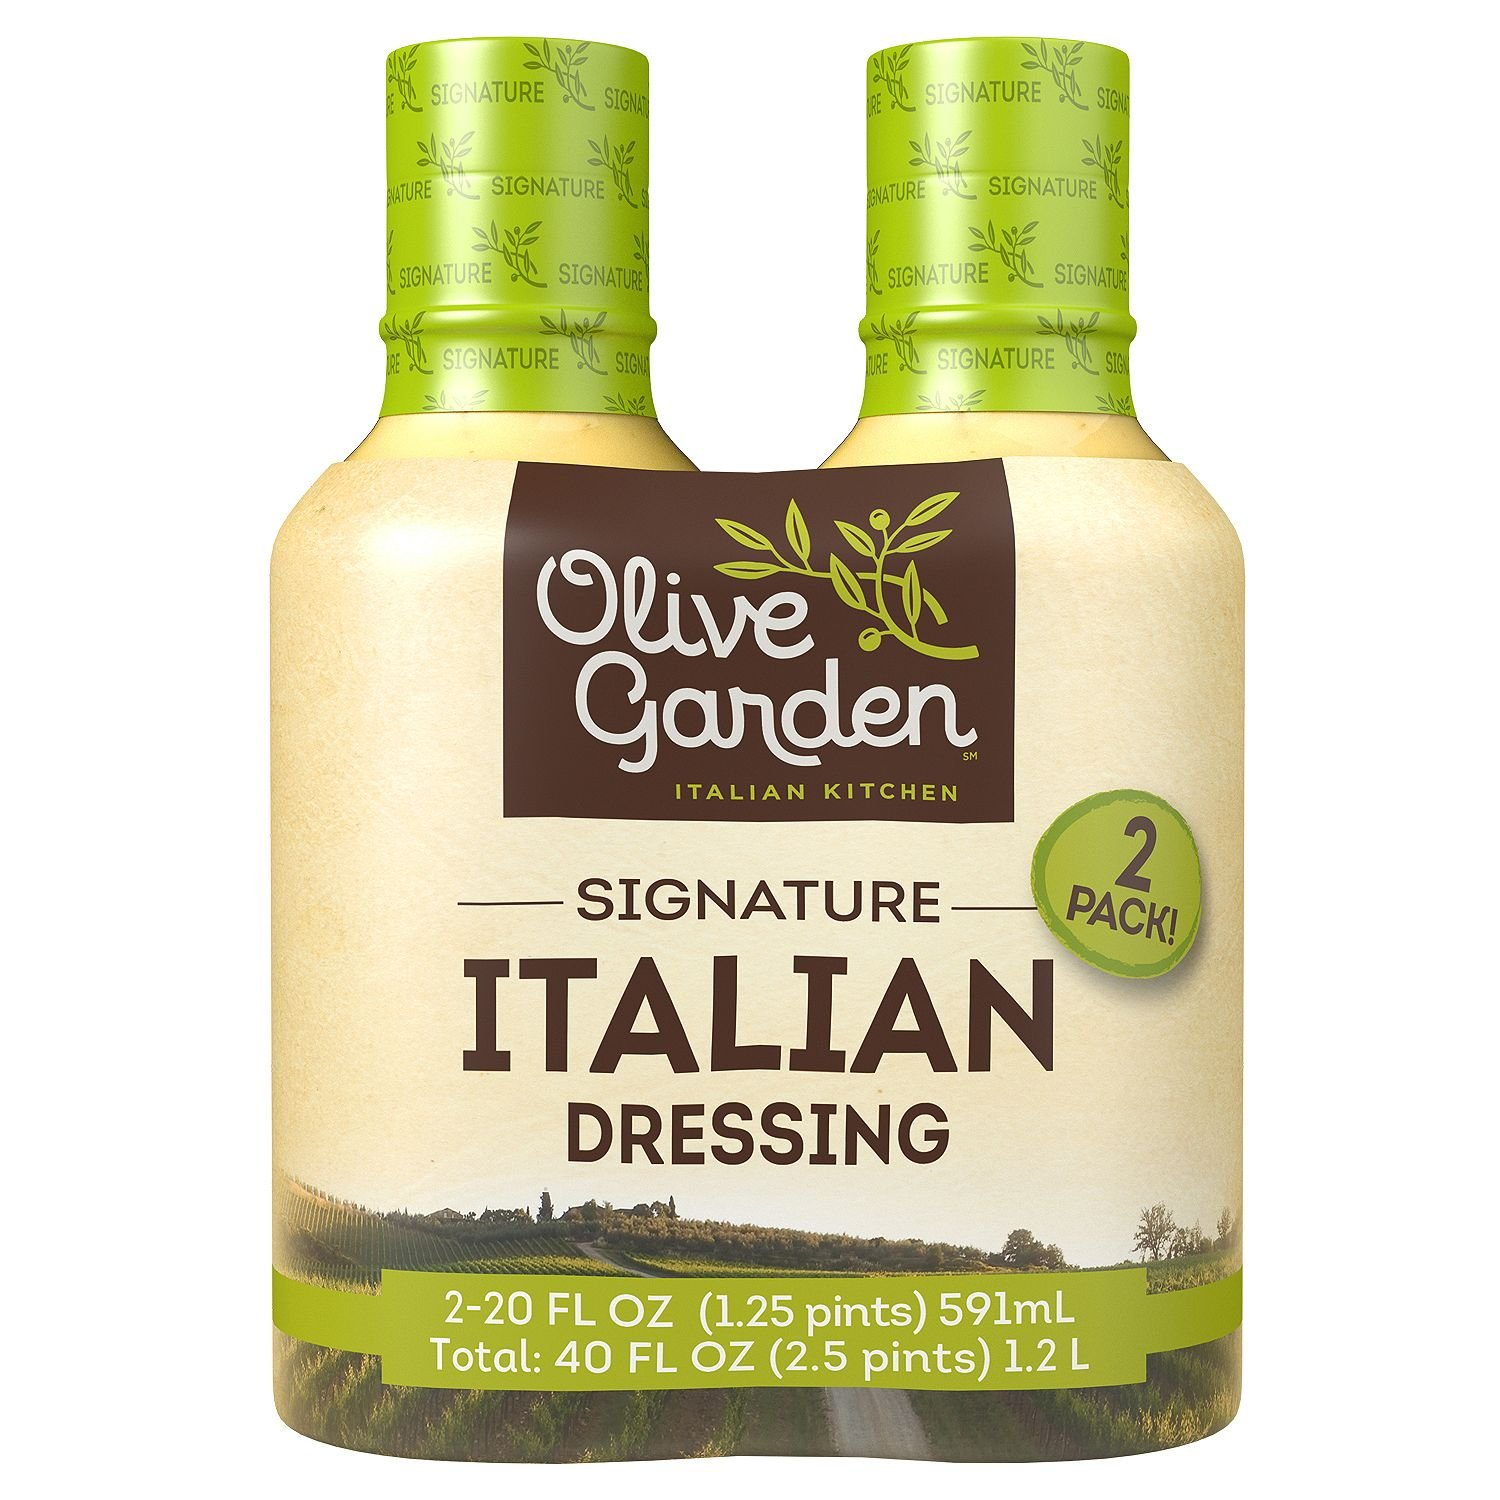 Olive Garden Signature Italian Dressing 20 oz. bottle, 2 ct. A1